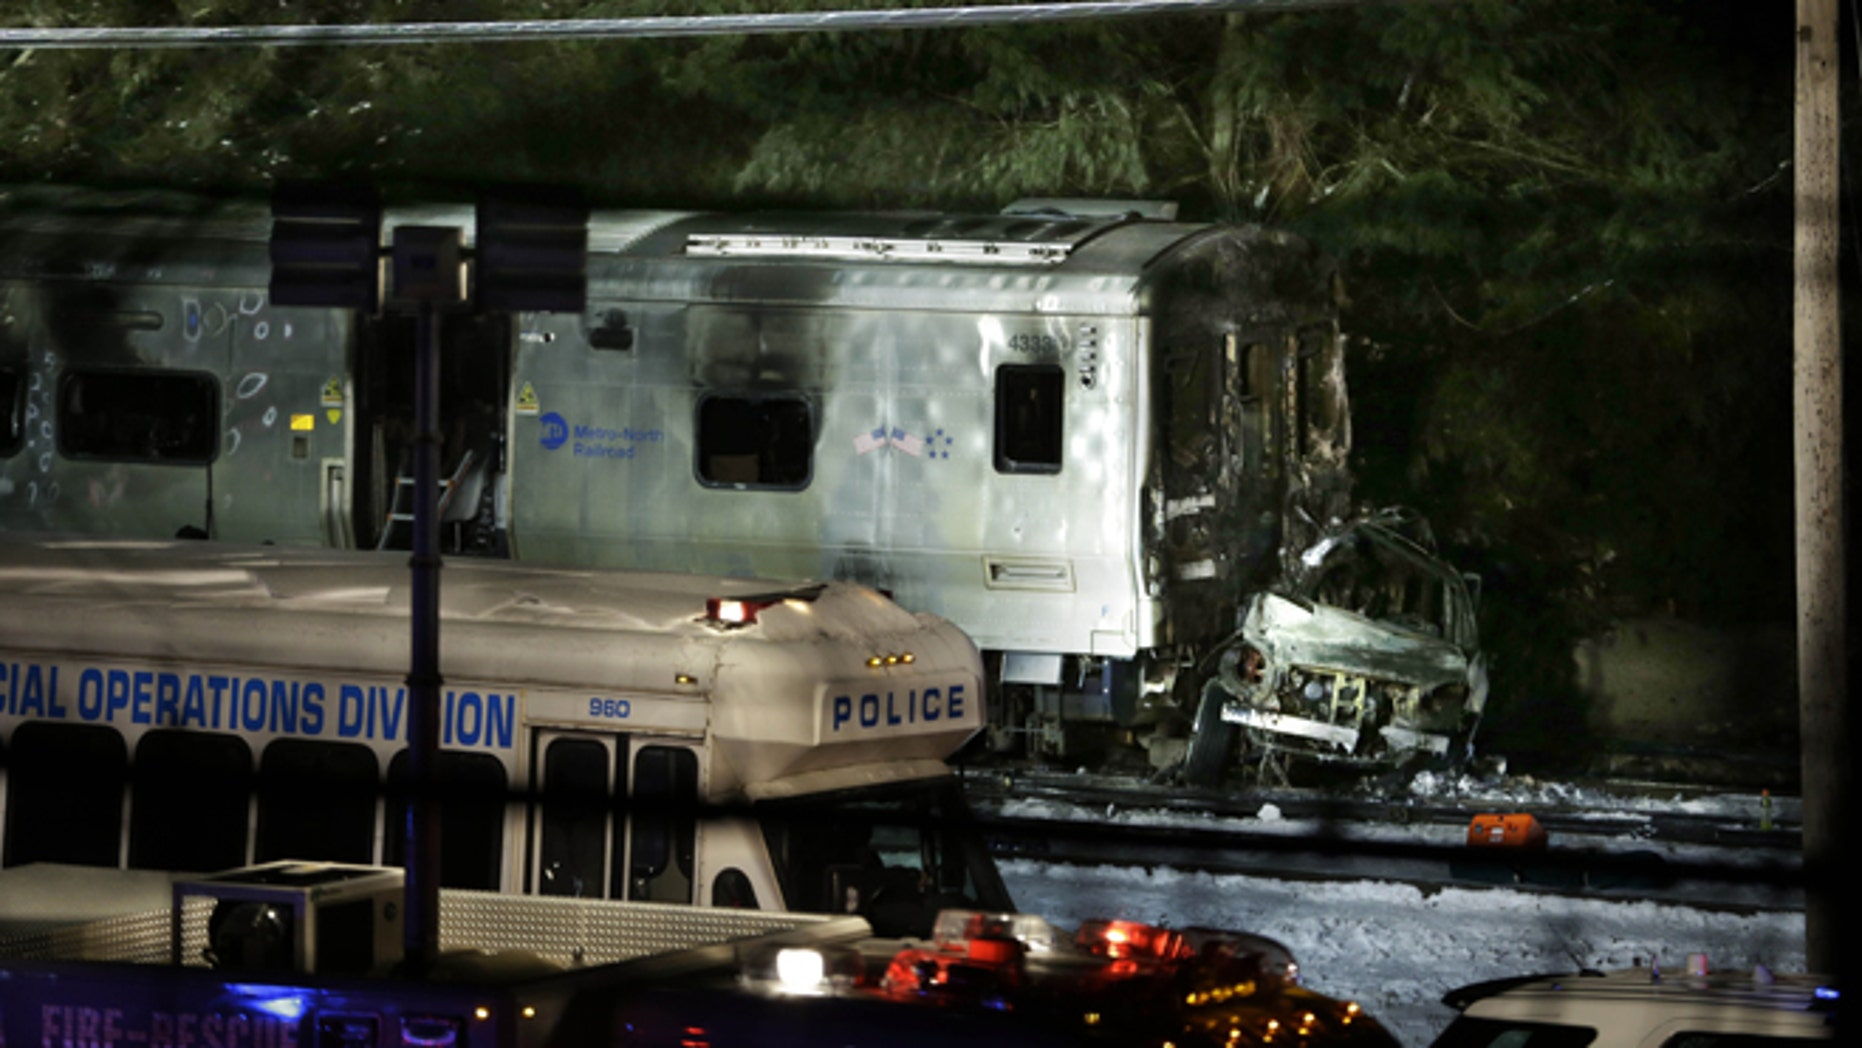 The wreckage of a car remains smashed against the front of a train in Valhalla, N.Y., Tuesday, Feb. 3, 2015. A packed commuter train slammed into a sport utility vehicle stuck on the tracks and erupted into flames Tuesday night, authorities said. (AP Photo/Seth Wenig)